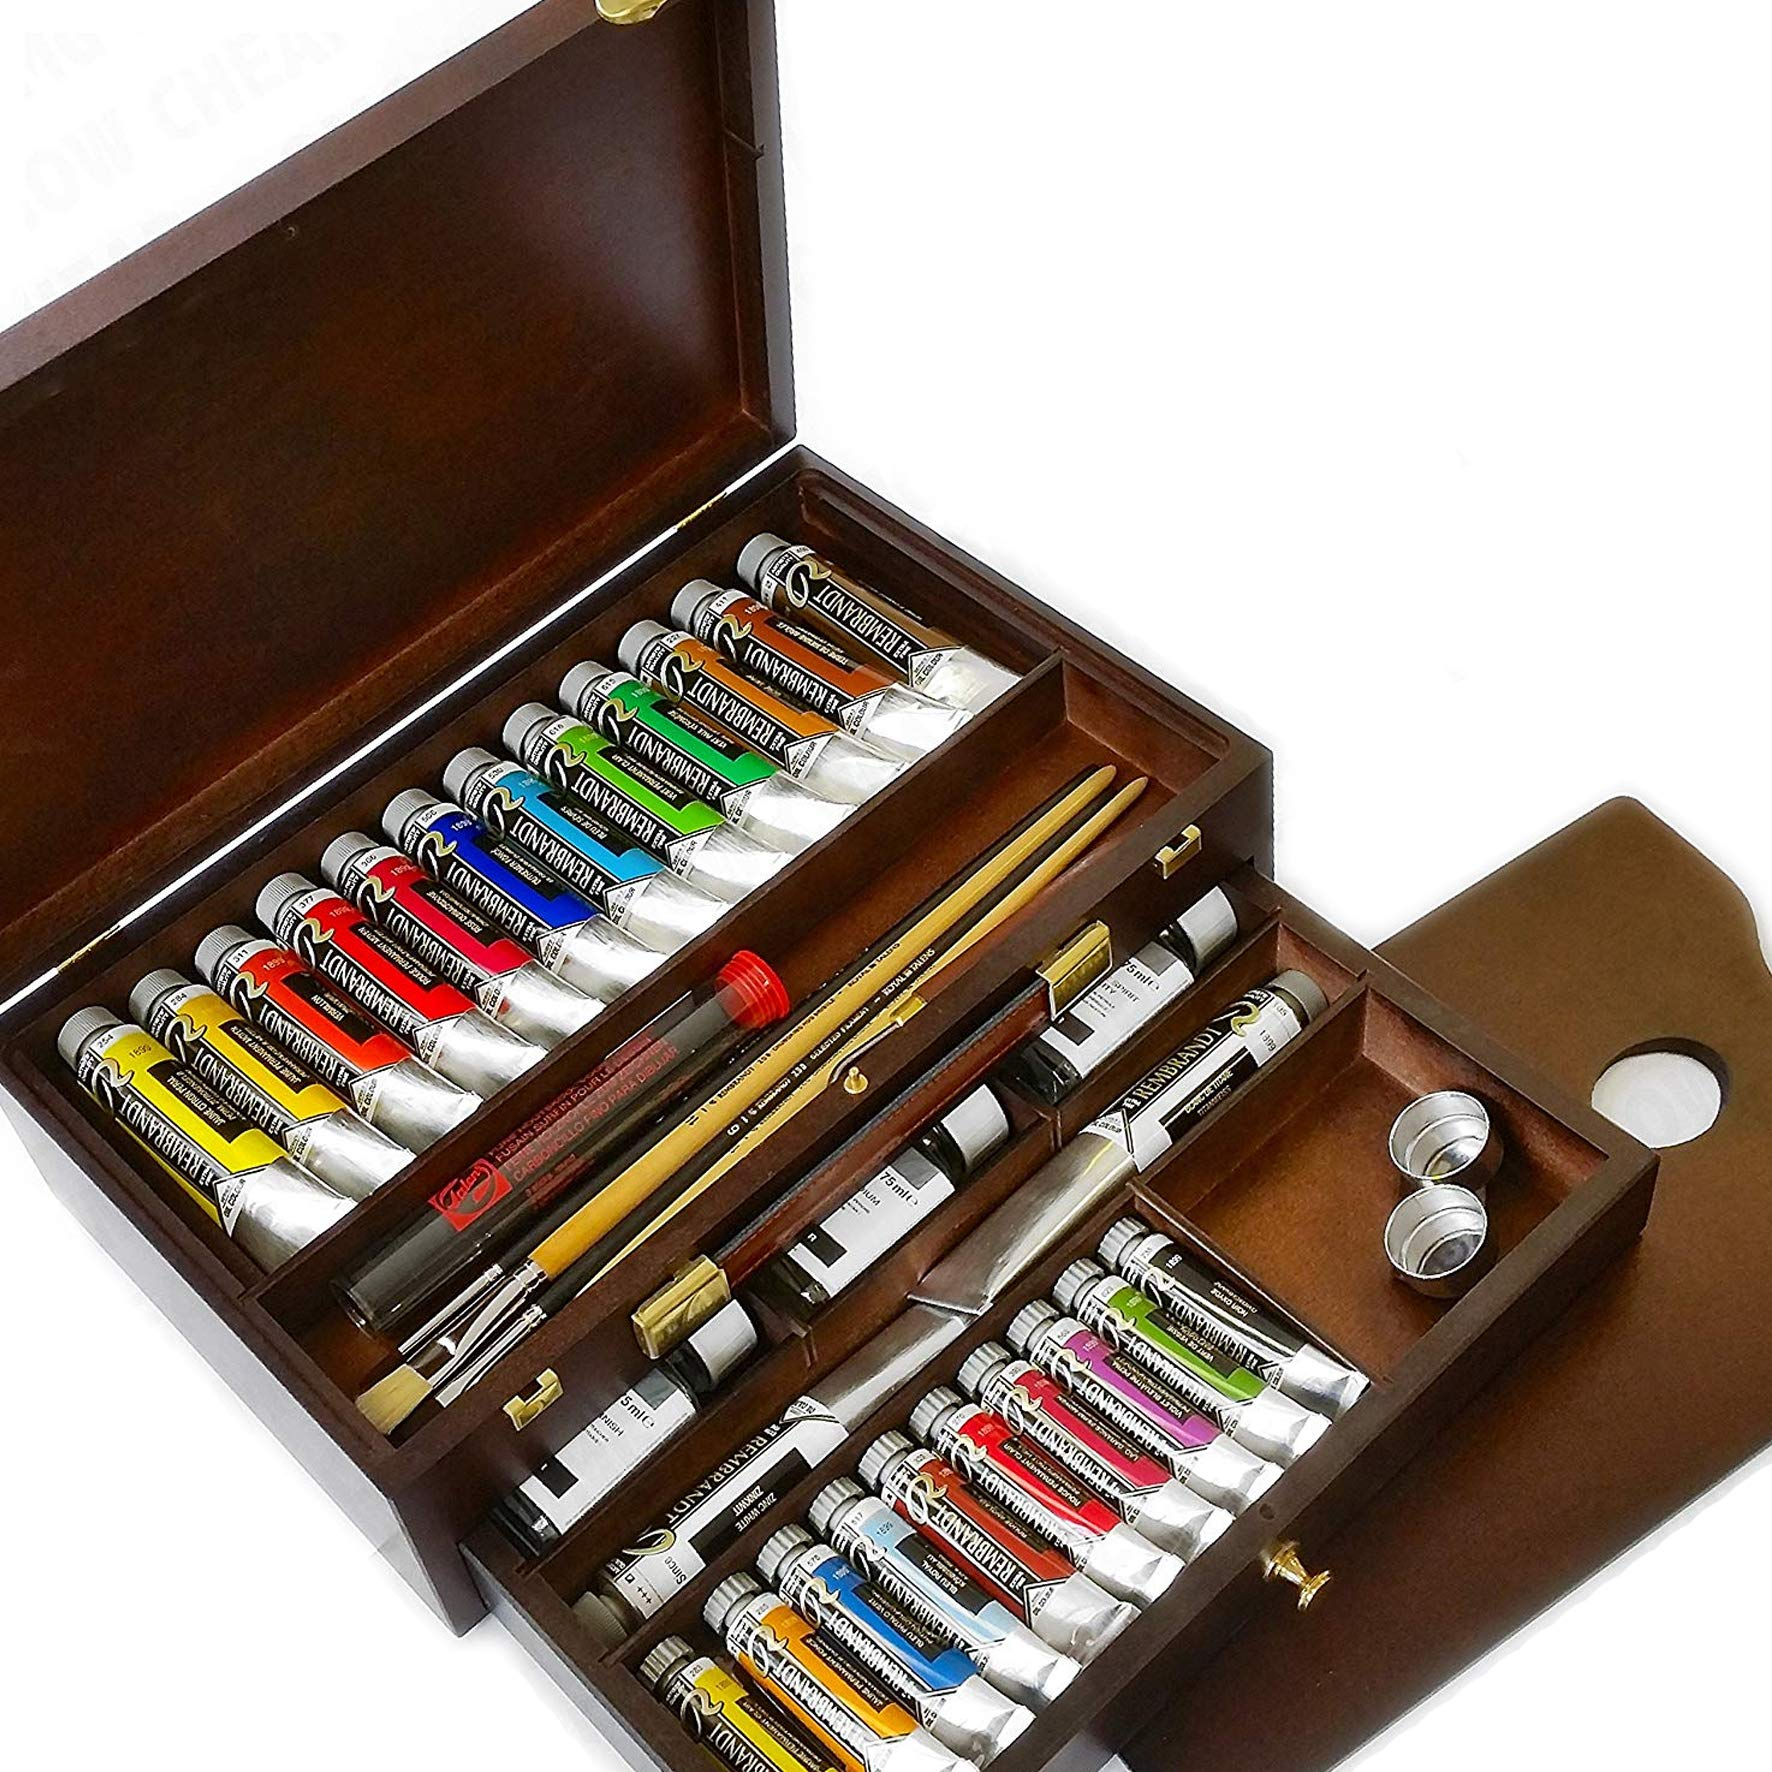 Royal Talens - Rembrandt Oil Colour Box - Master Gold Edition in Wooden Chest - With Paints, Palette, and Brushes by Royal Talens